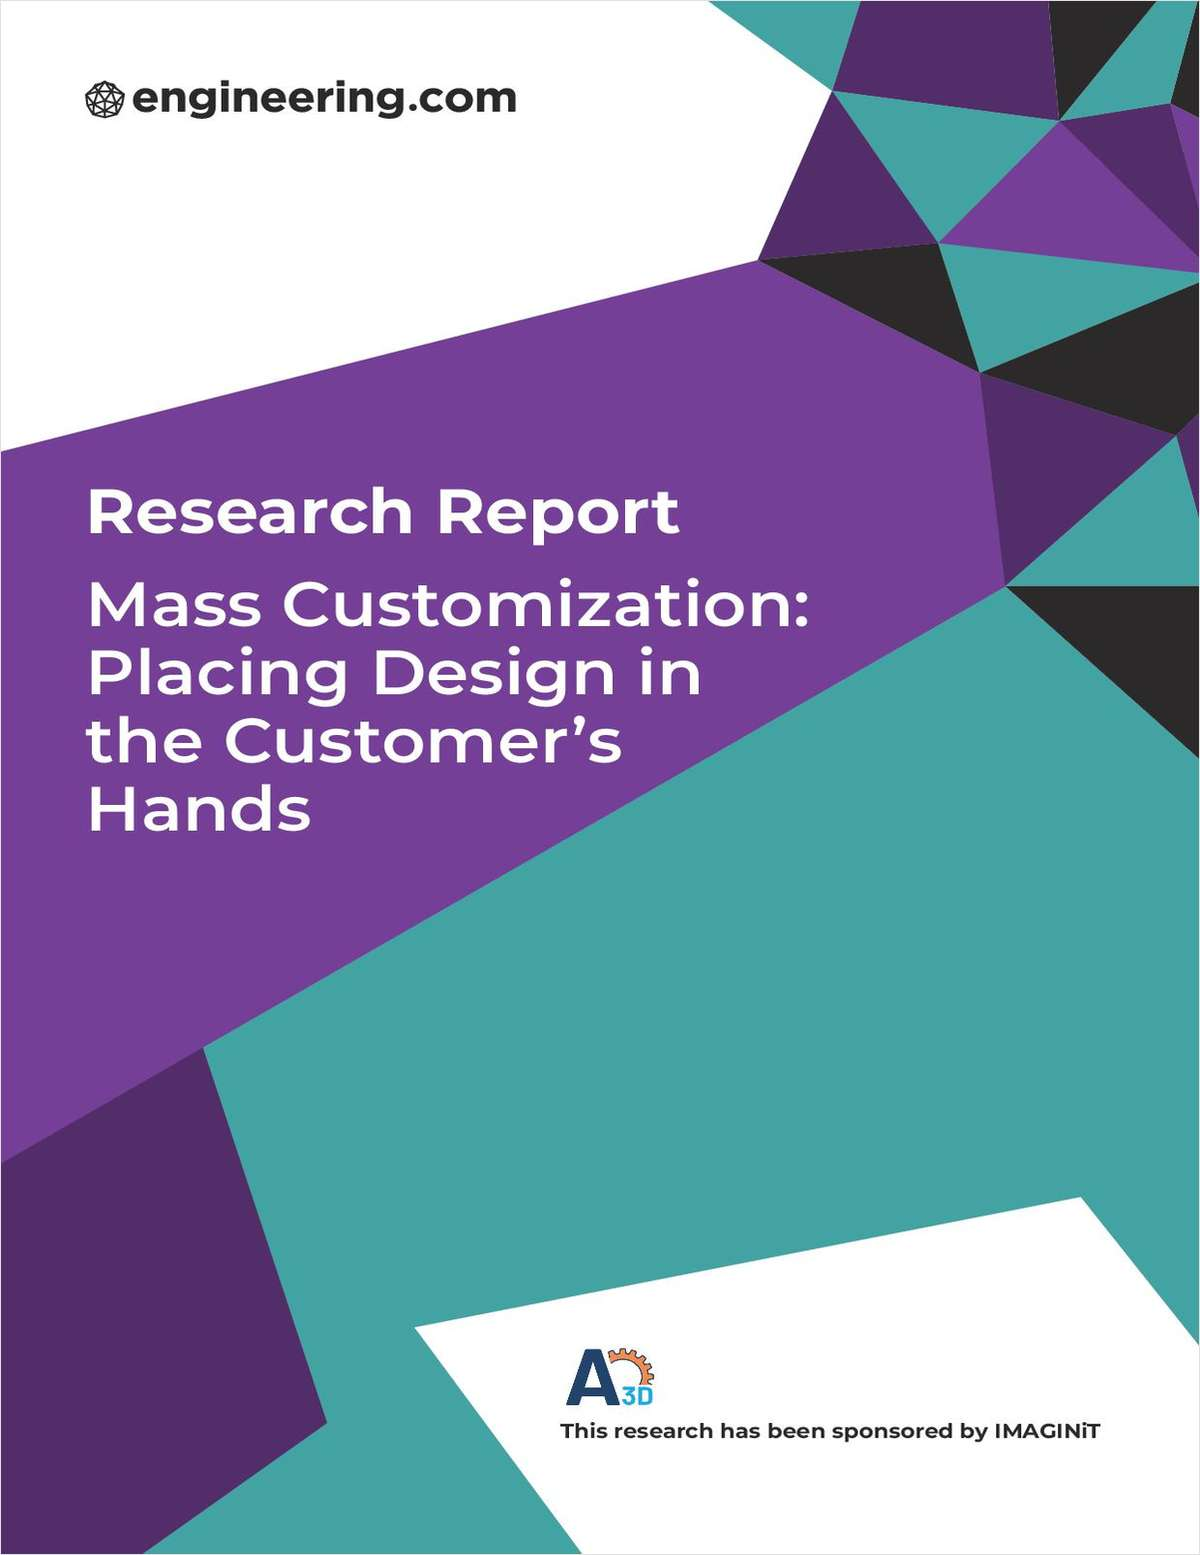 Mass Customization Placing Design in the Customers Hands